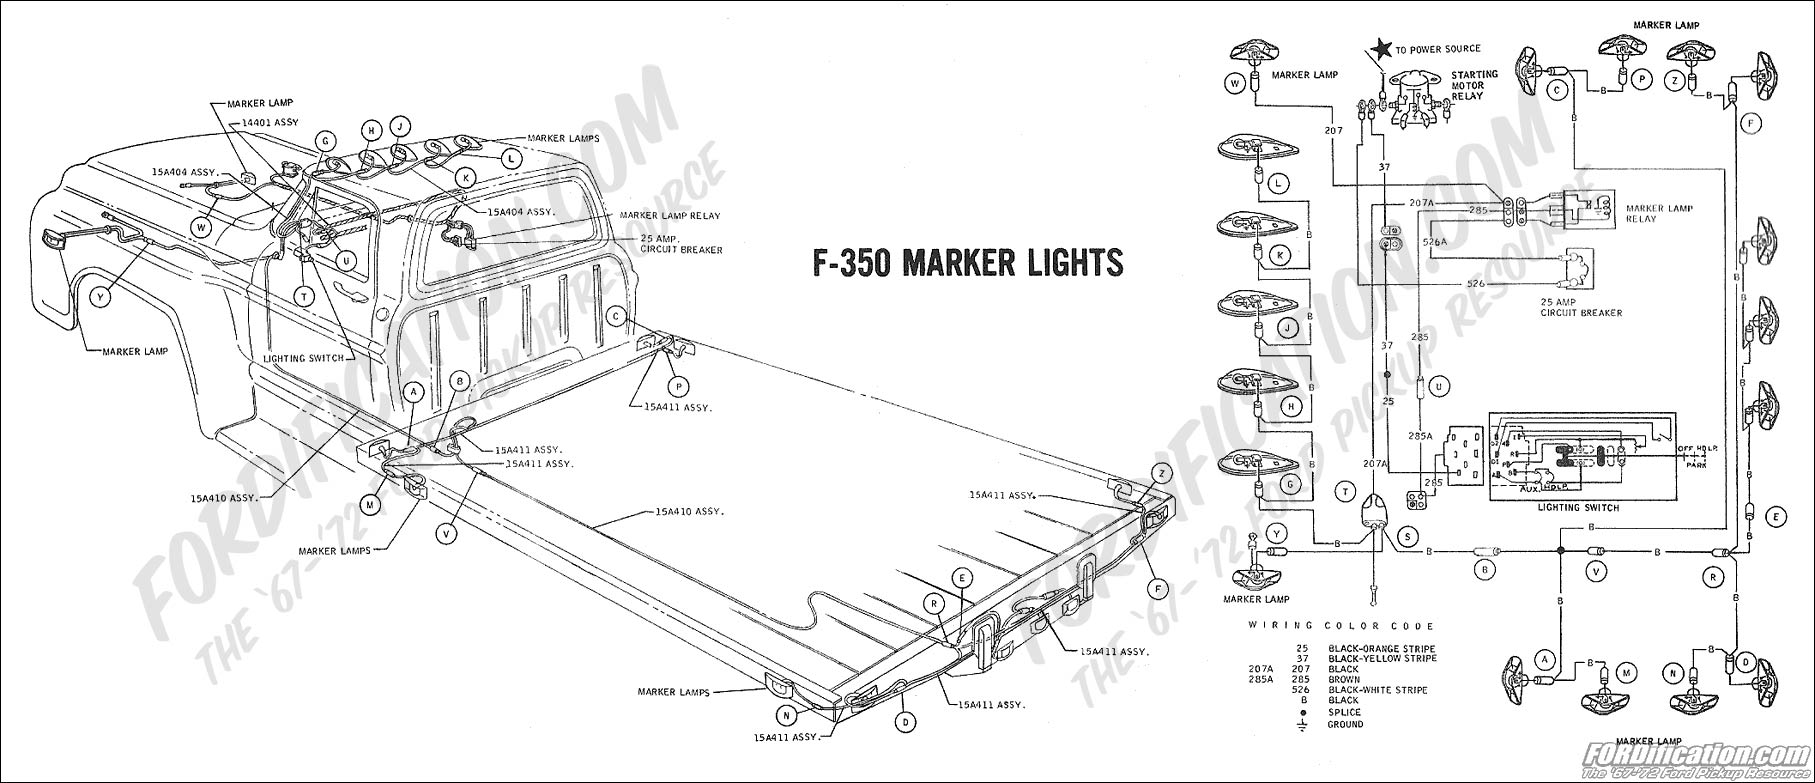 Ford truck technical drawings and schematics section h wiring 1969 f 350 marker lights cheapraybanclubmaster